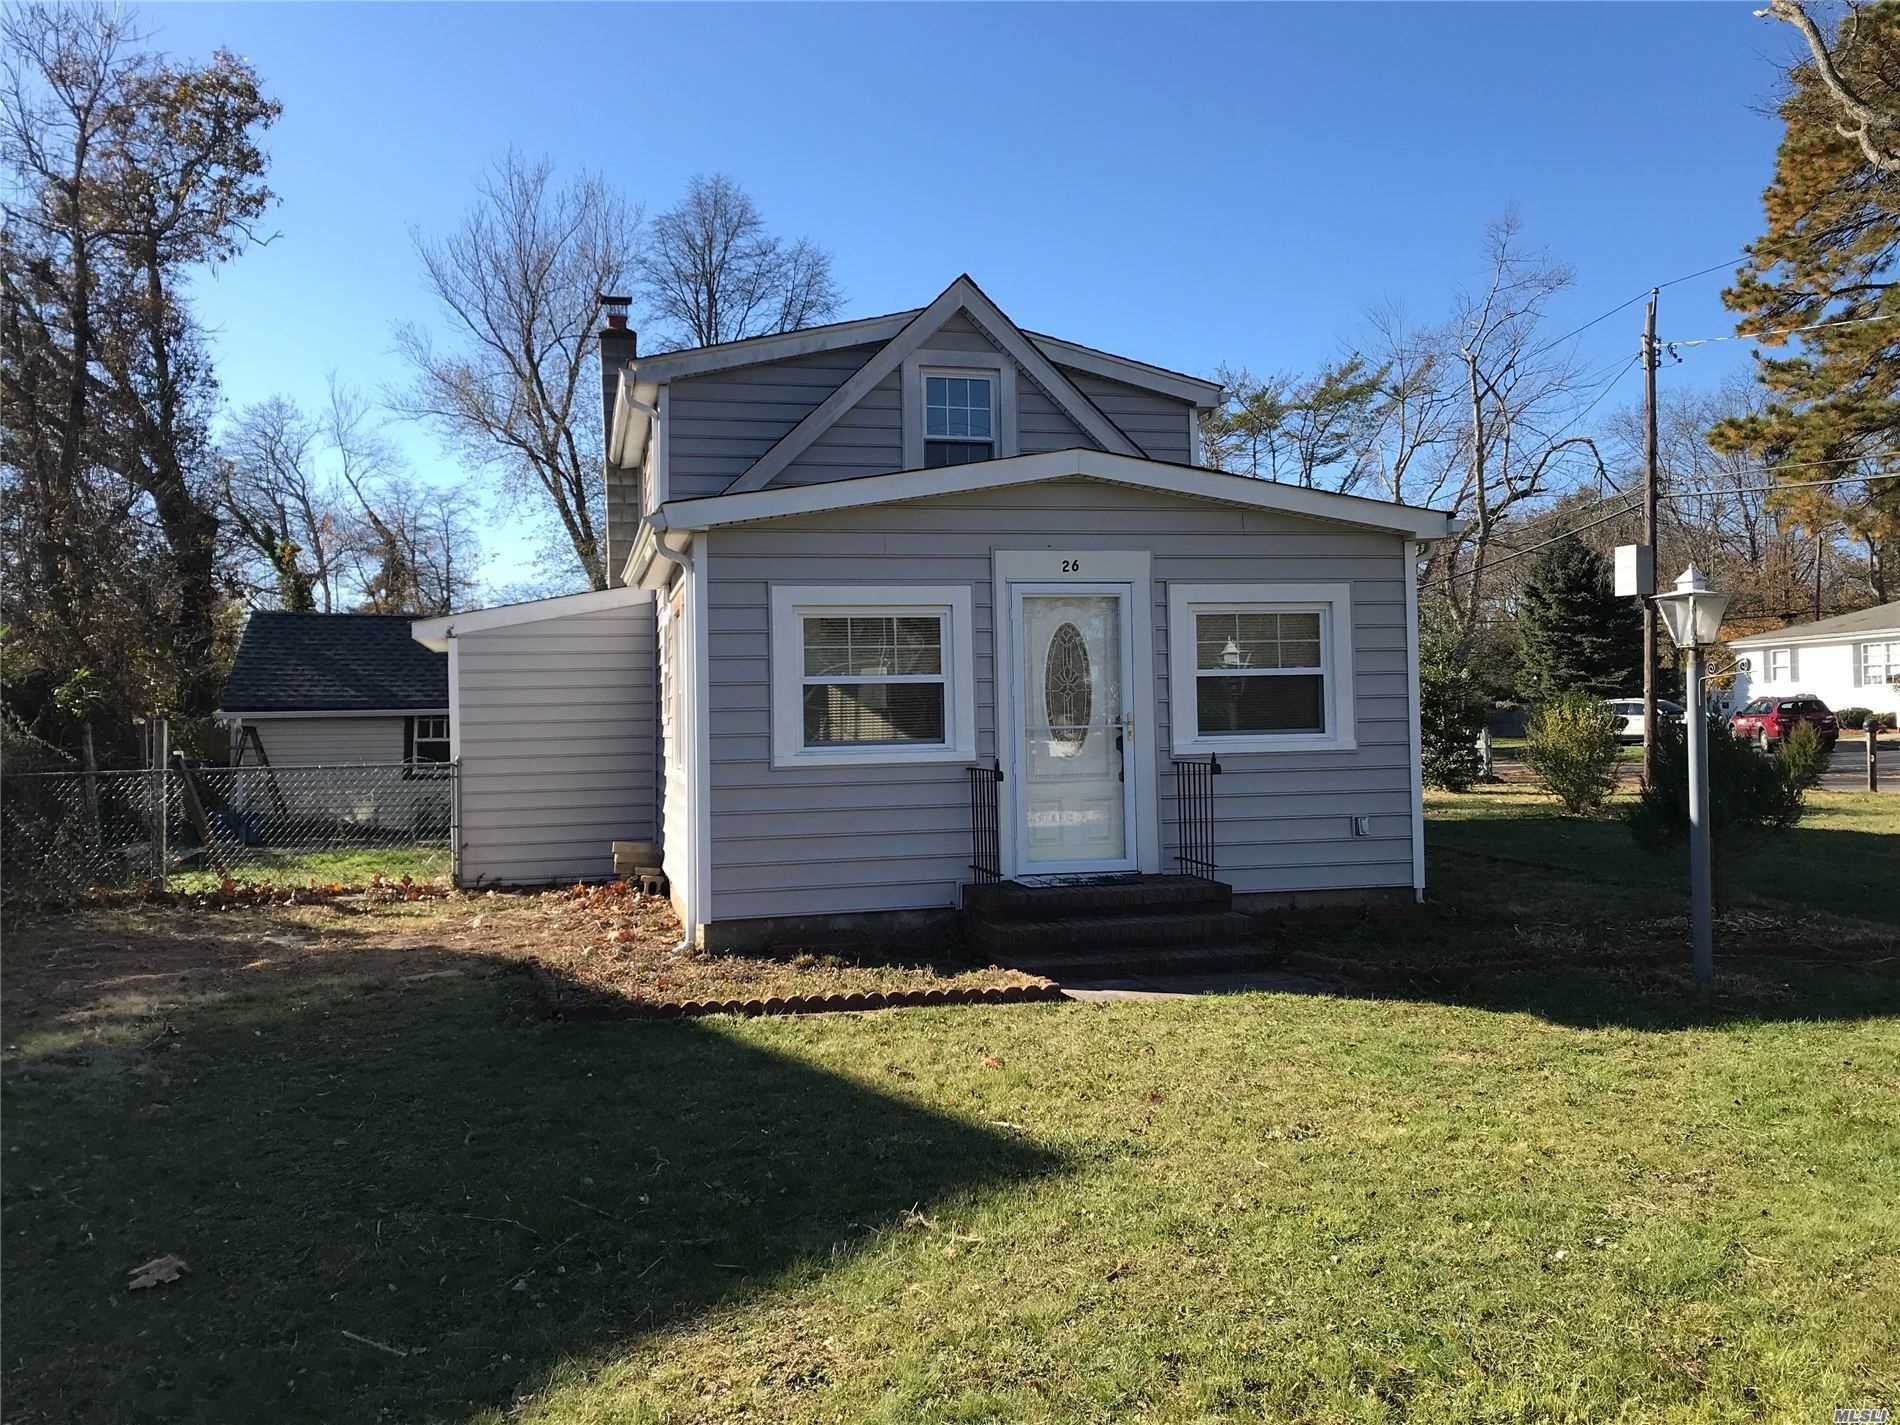 26 Lakeview Drive, Mastic Beach, NY 11951 - MLS#: 3187142